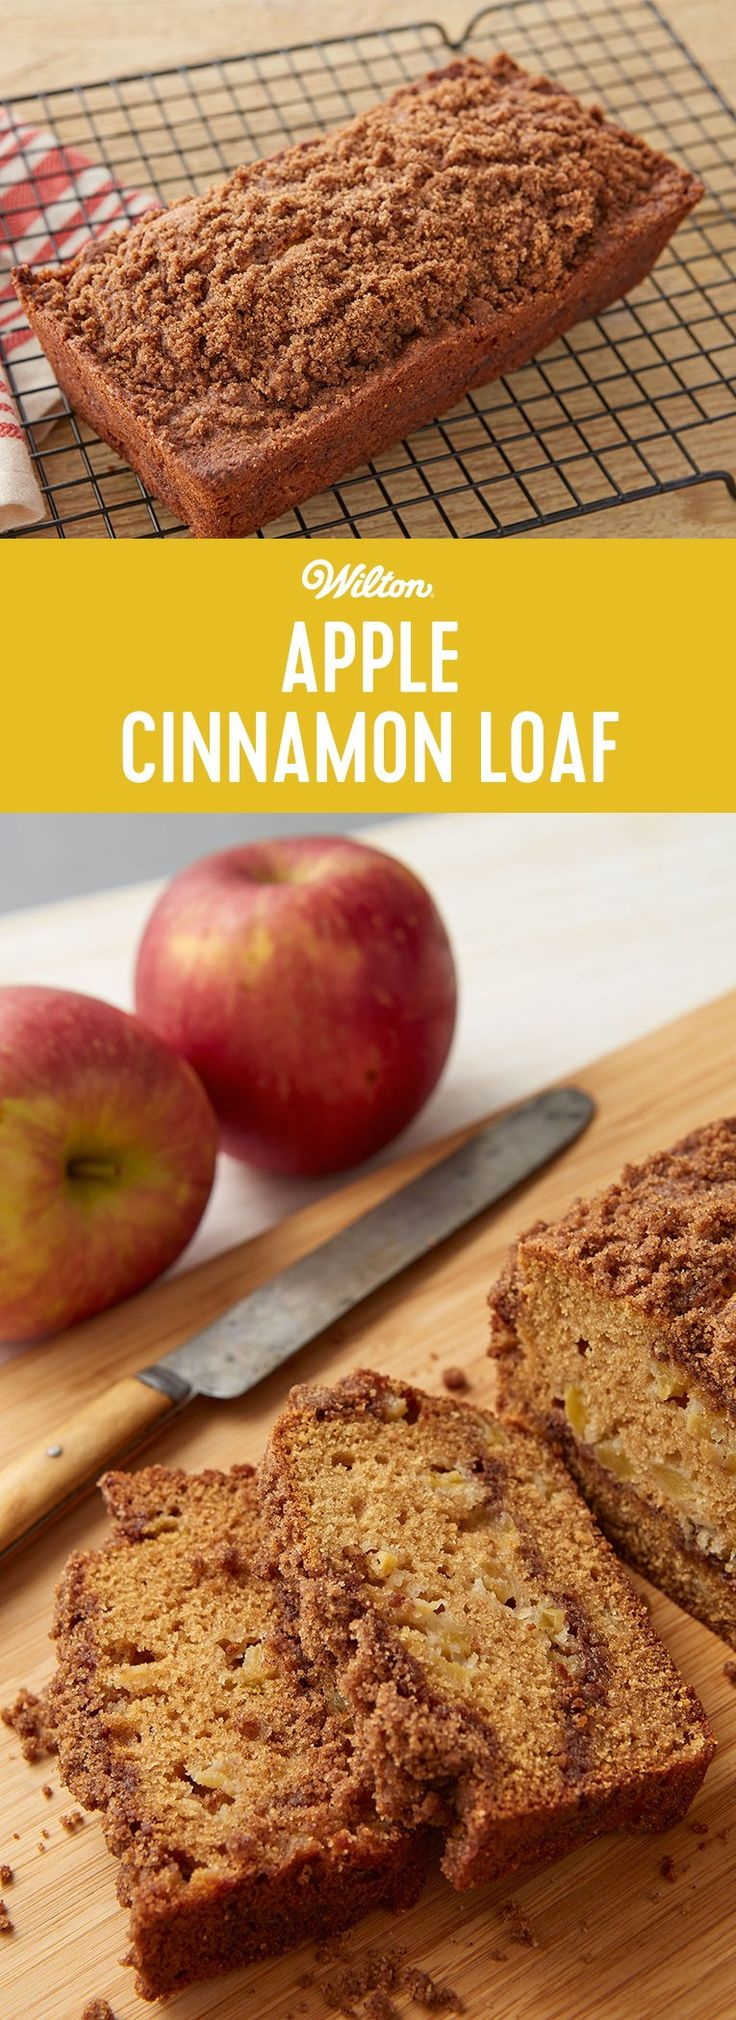 Apple Cinnamon Loaf Recipe - Apple sauce and chopped Fiji apples pack the punch of apple flavor in this moist loaf cake. A layer of sweet-spicy streusel flavored with cinnamon, nutmeg and brown sugar in the middle and more streusel on top melts-in-your mouth and adds crunch. Bake in a loaf pan for easy-to-cut and-serve portions. #fallbaking #wiltoncakes